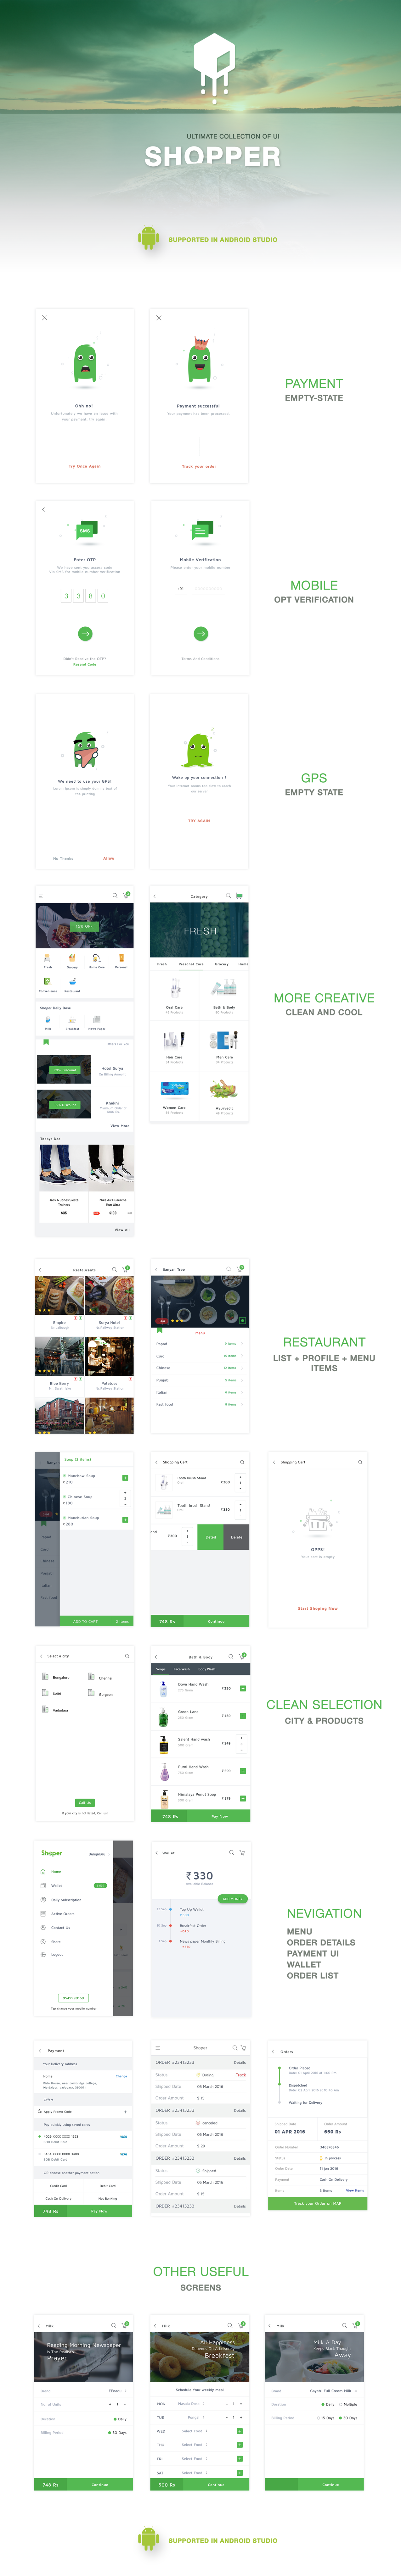 Shopper UI KIT